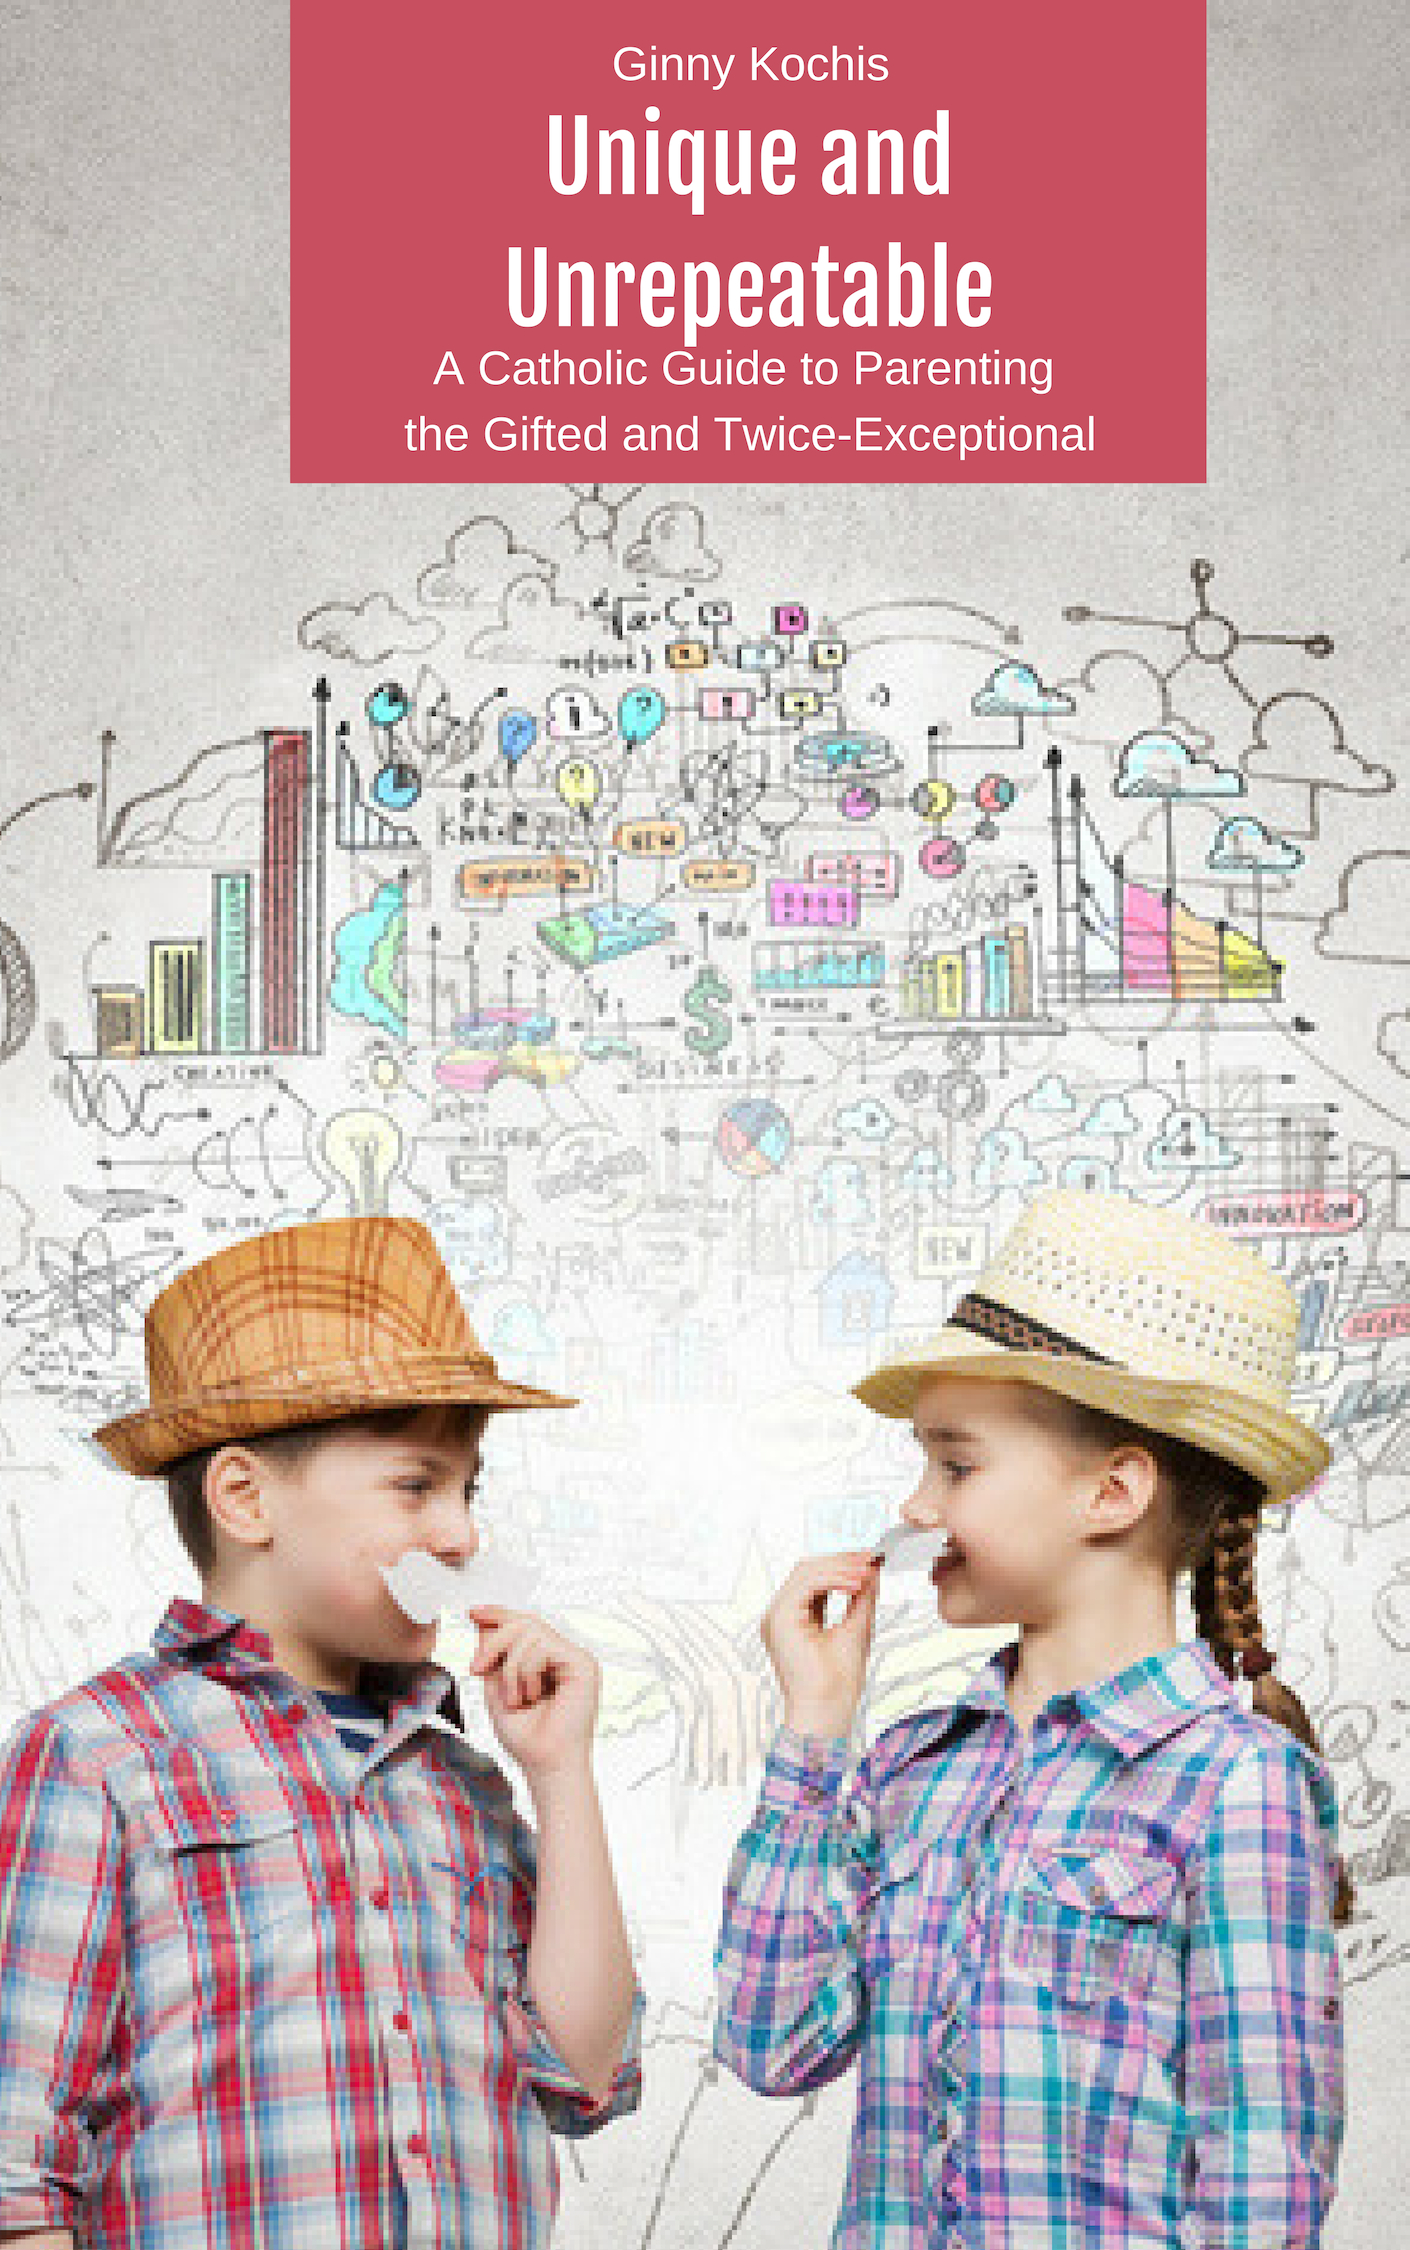 Unique and Unrepeatable provides prayerful encouragement and research-based discussion on the challenges and joys of raising gifted/2E kids in the Catholic faith.